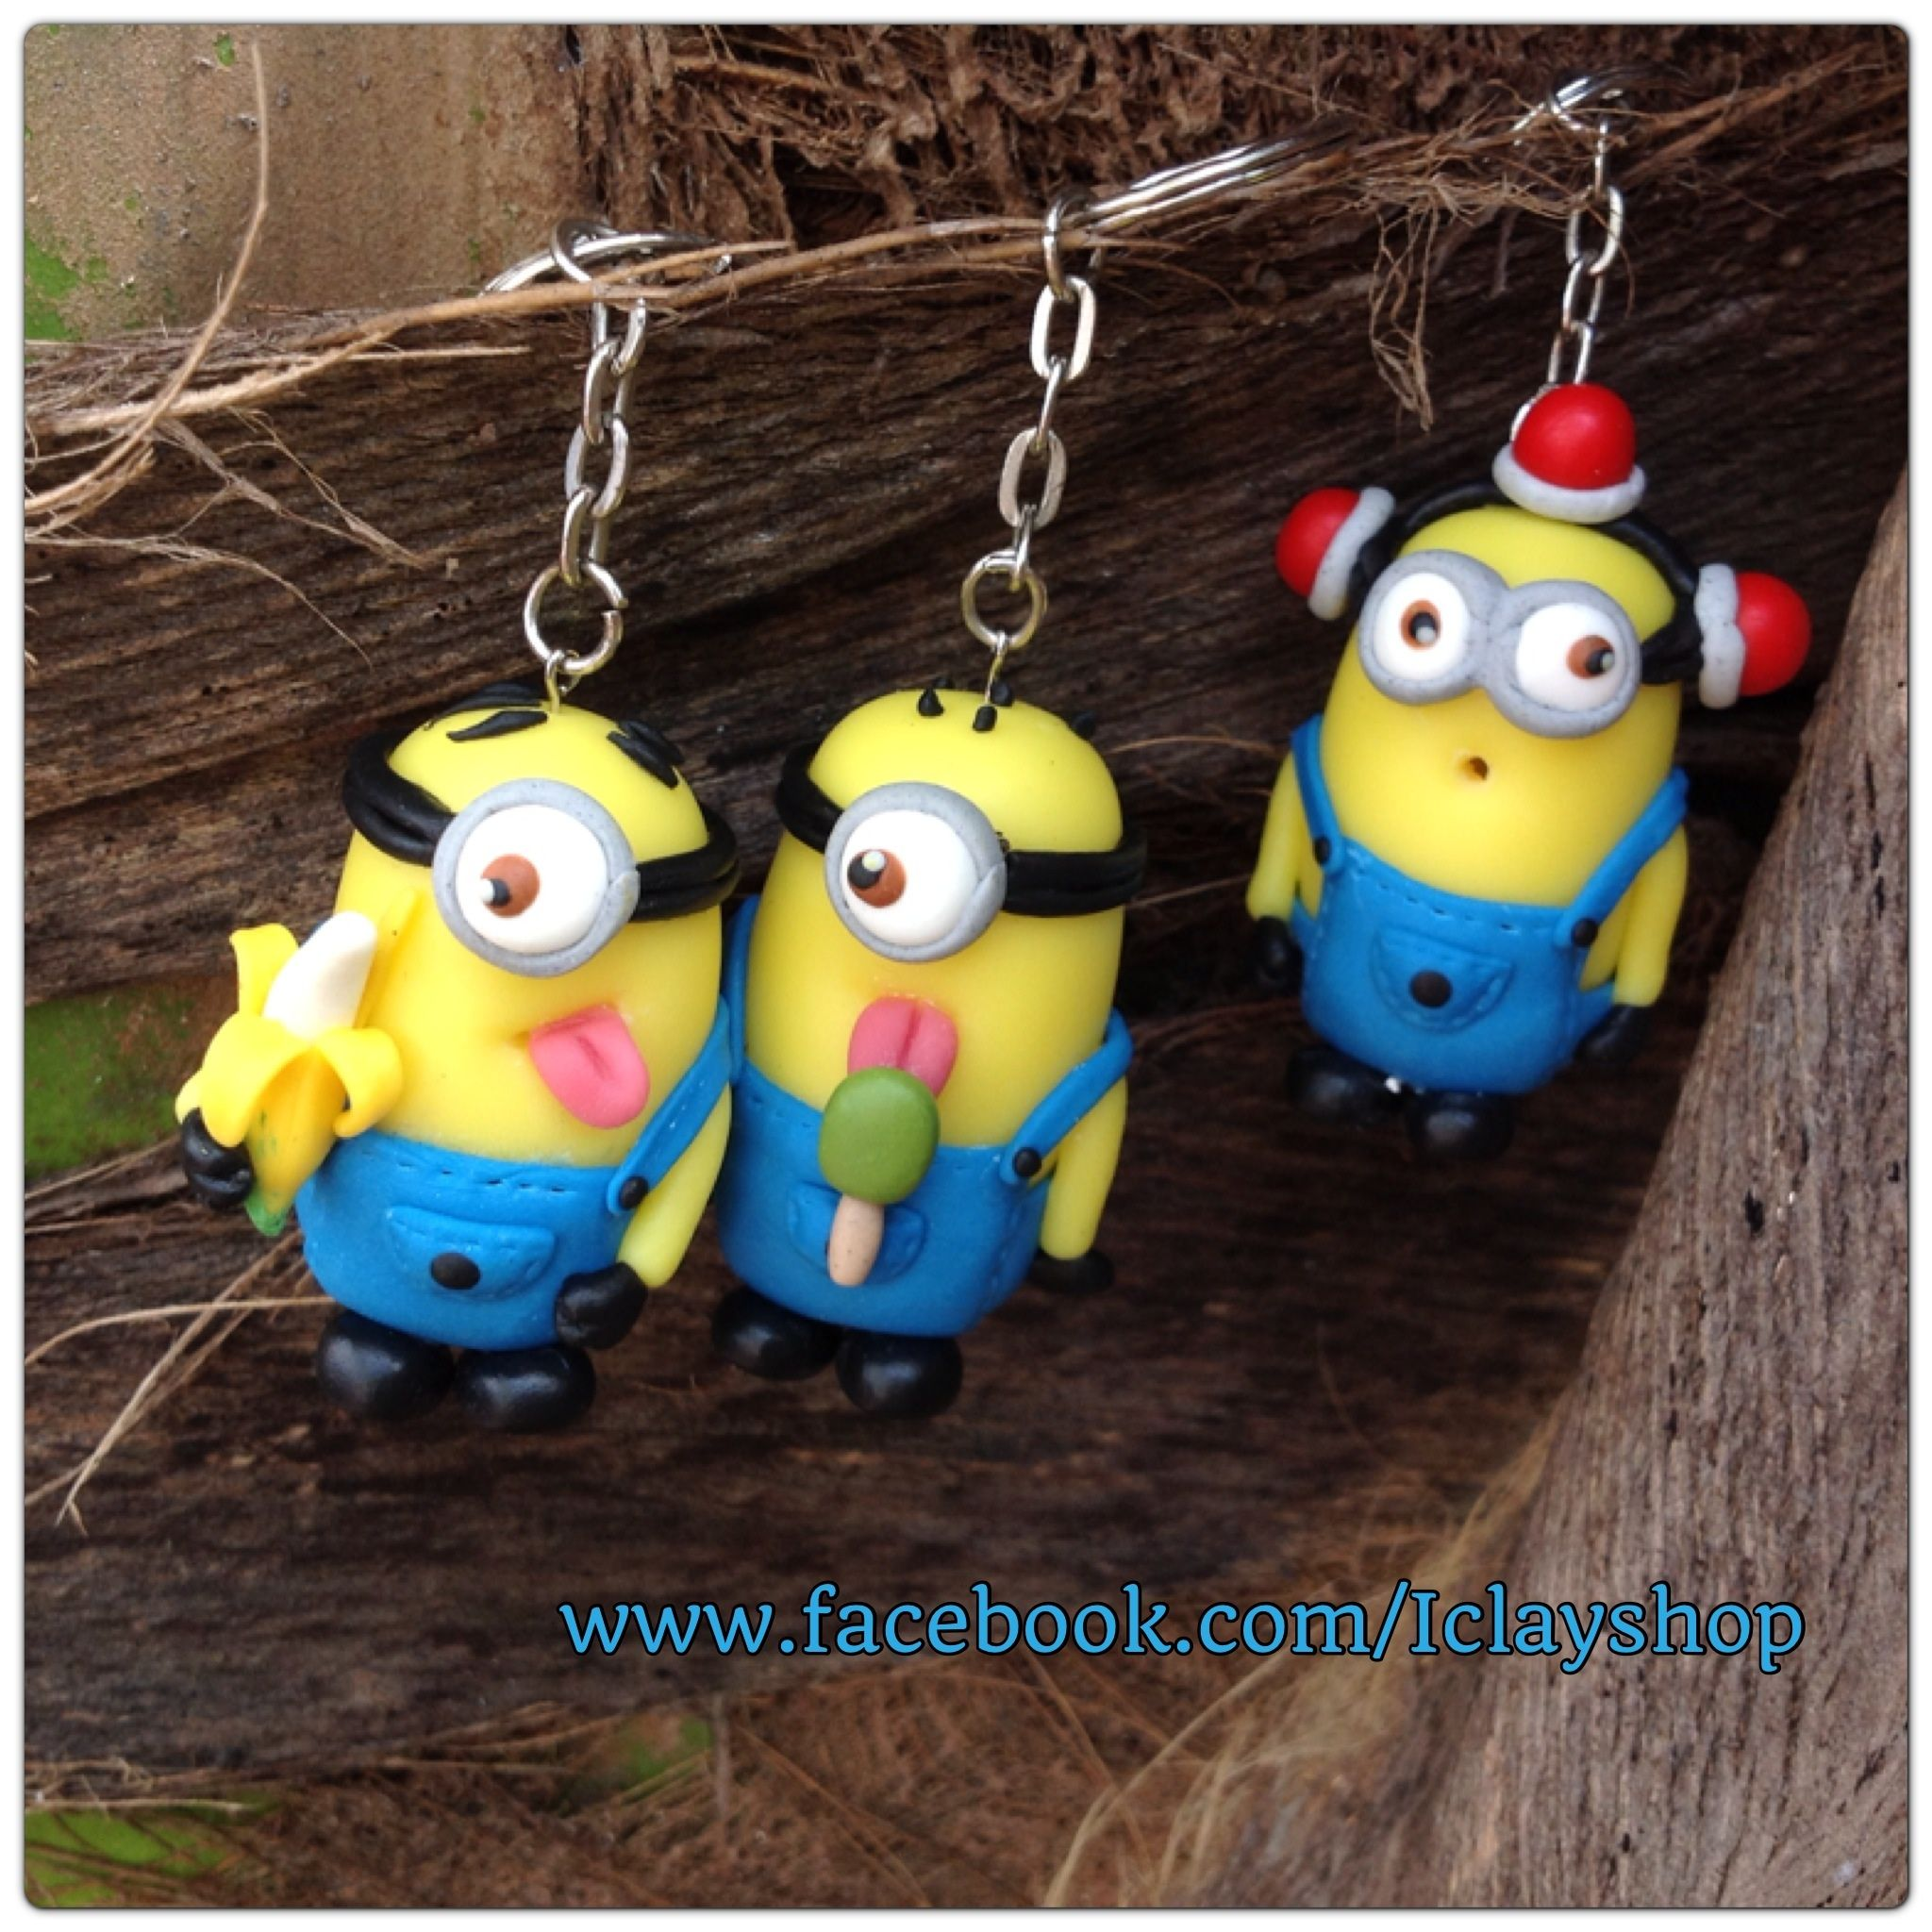 polymer clay minion keychain fimo pinterest fimo fimo schmuck und knete. Black Bedroom Furniture Sets. Home Design Ideas